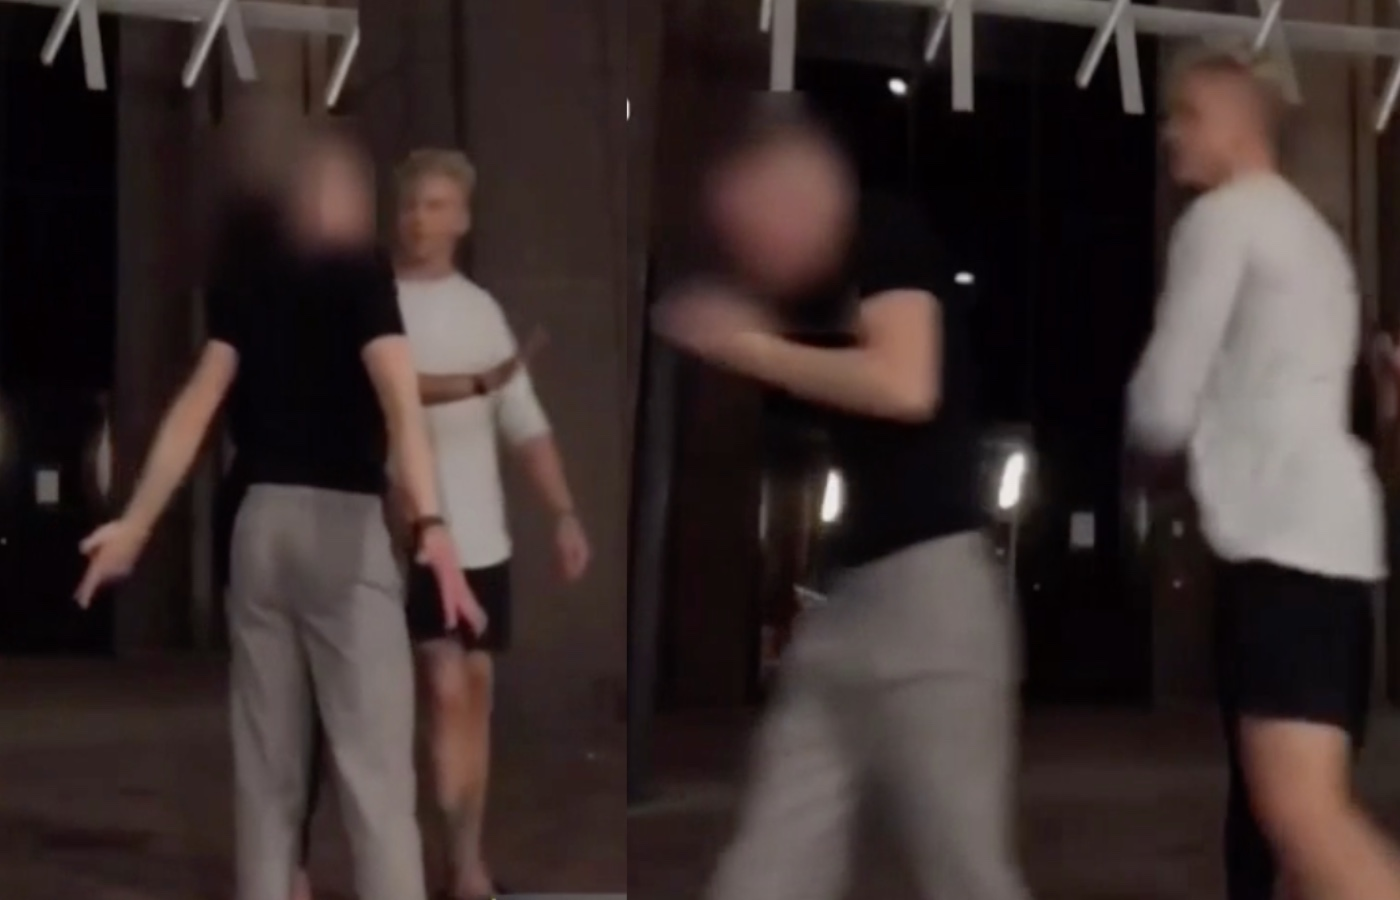 Gay man being brutally beaten on the street while filming a TikTok